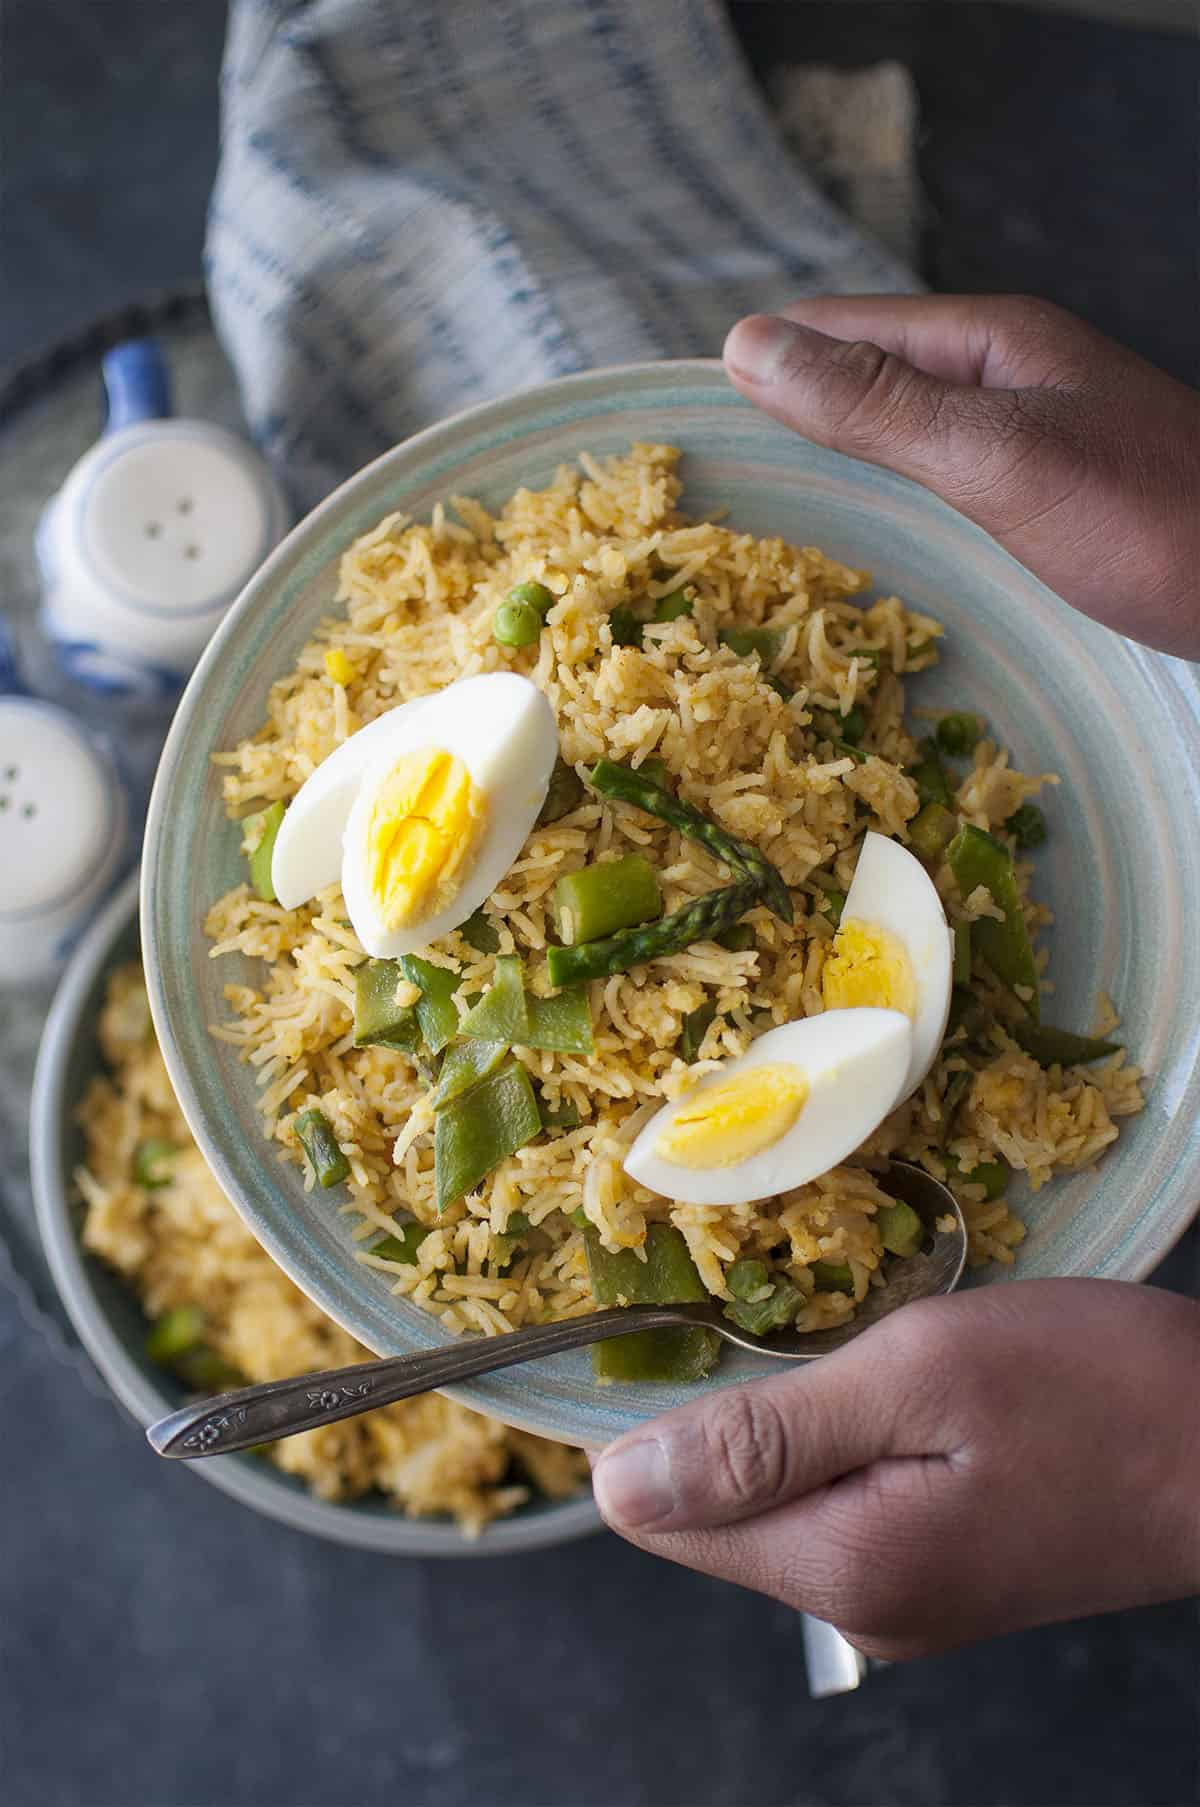 Hand holding blue plate with kedgeree topped with boiled eggs